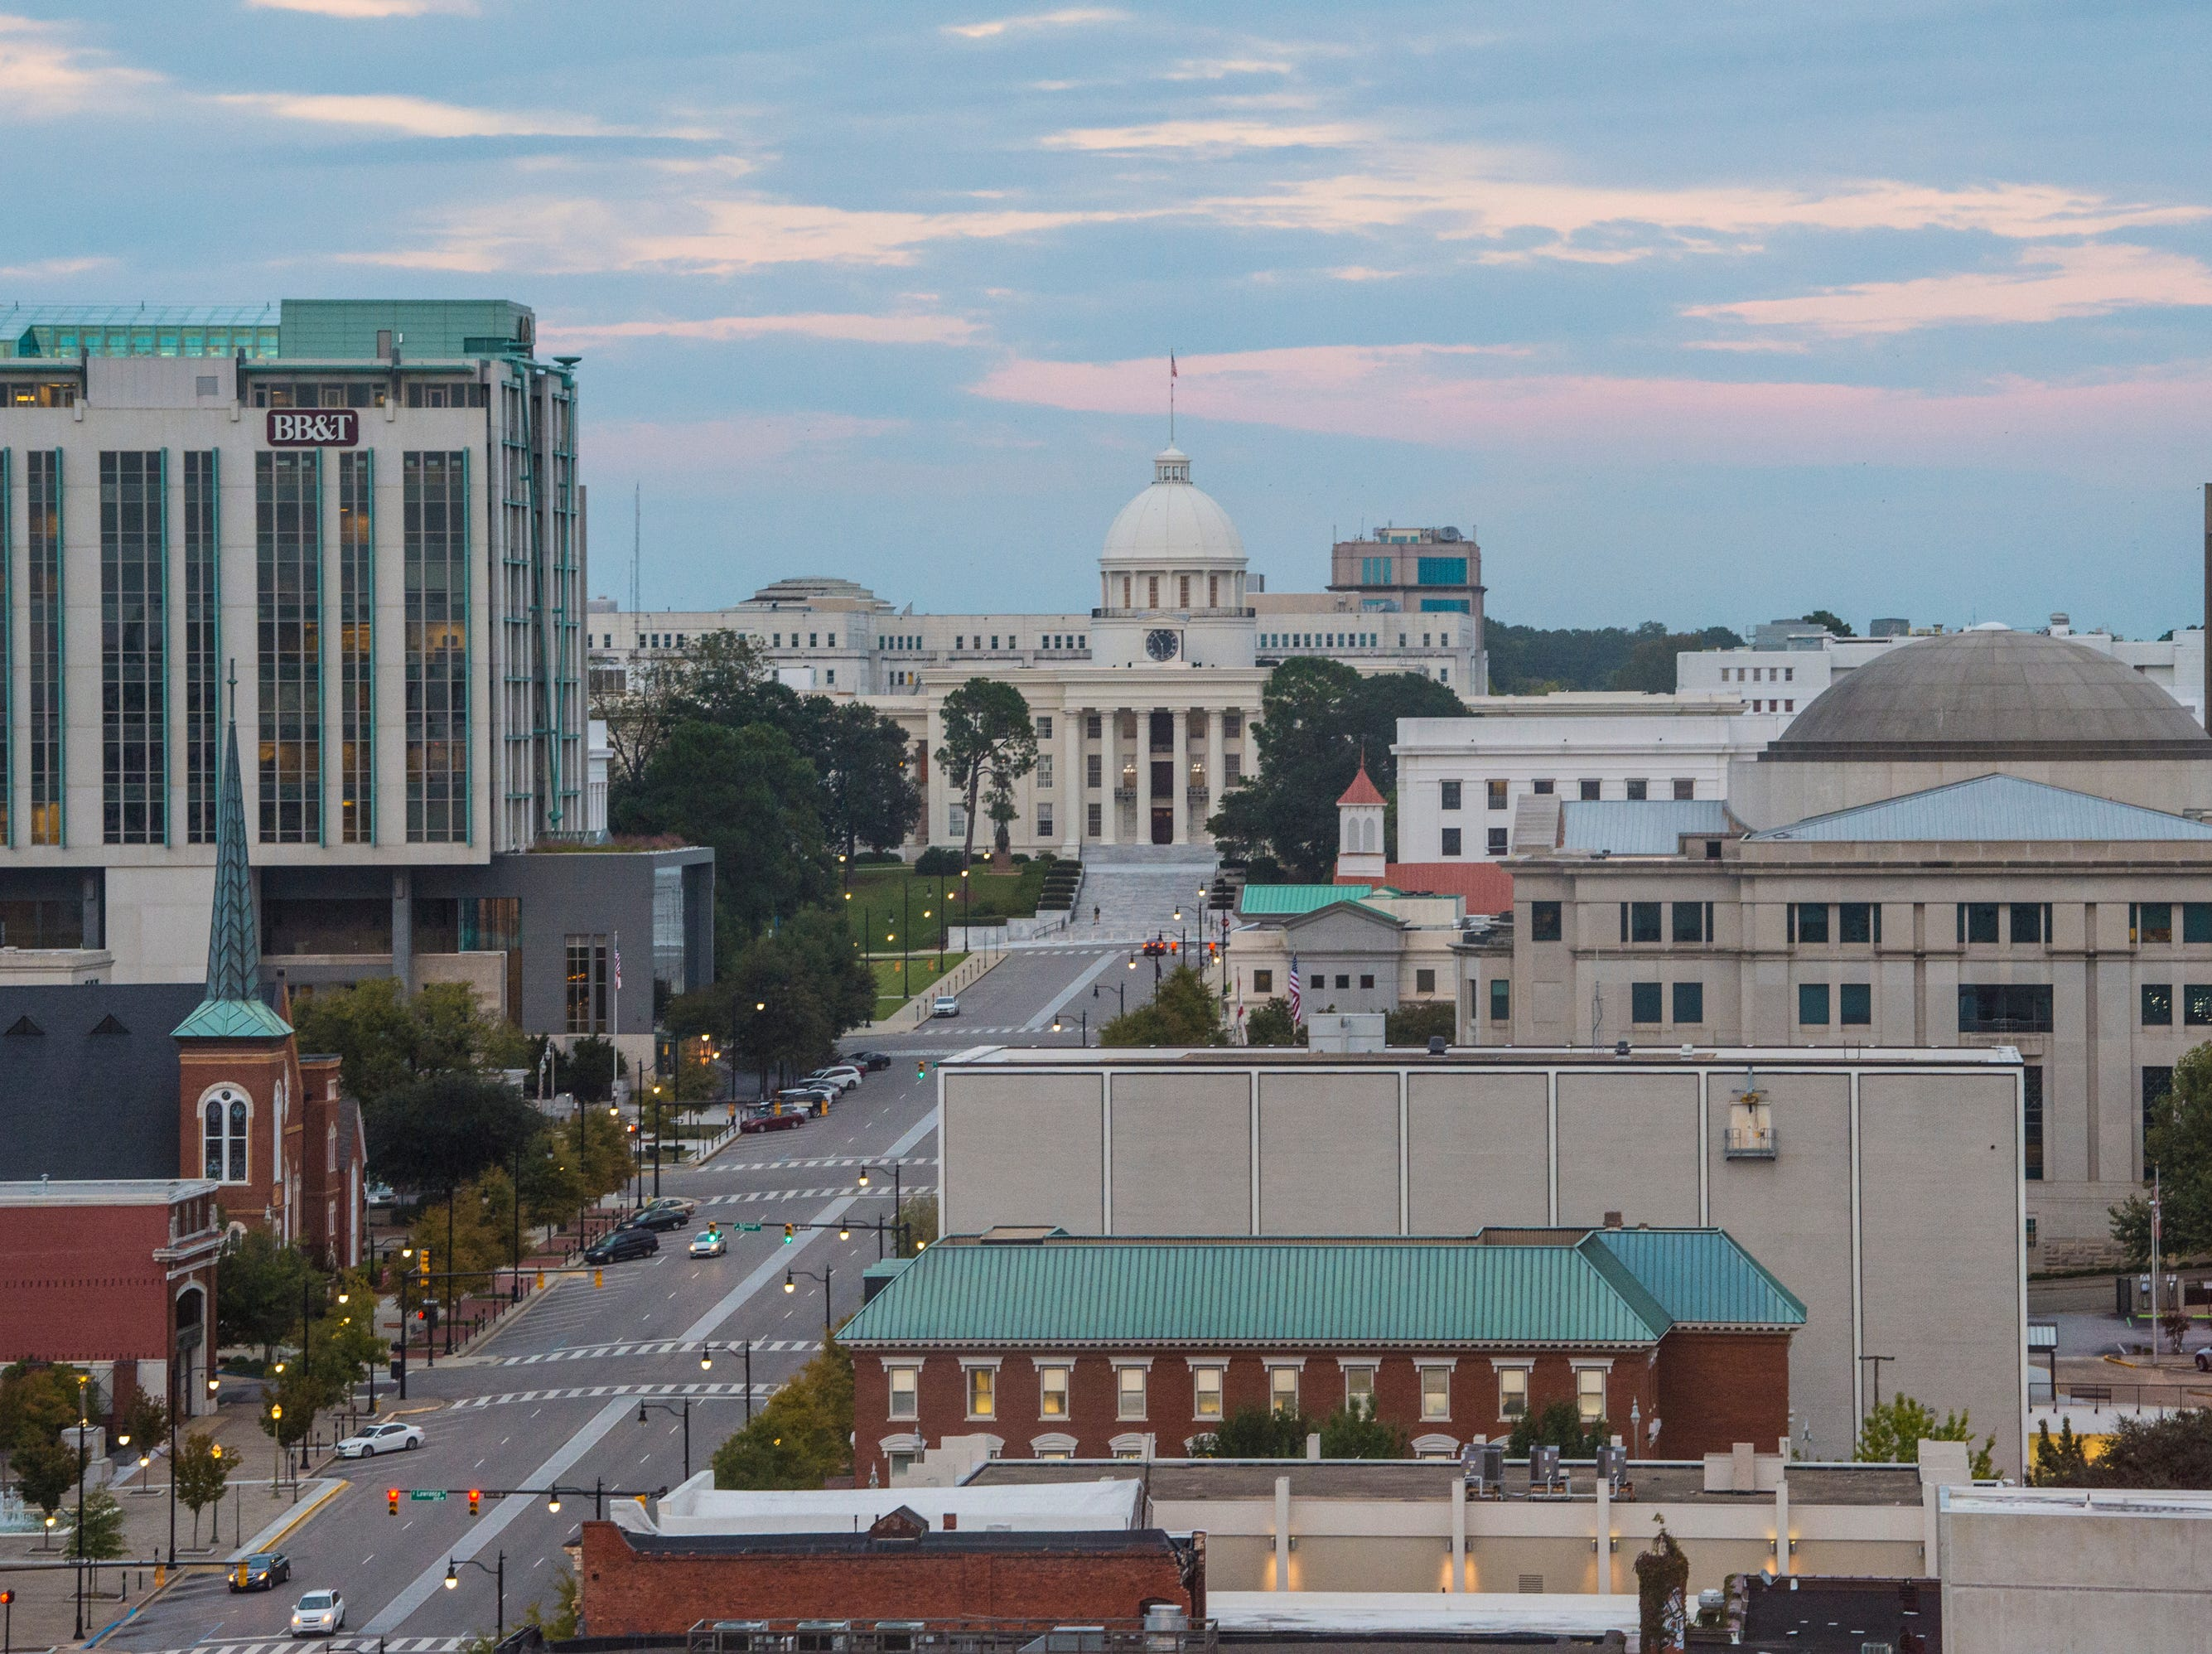 The view from Bell Lofts inside the historic Bell Building in Montgomery, Ala., on Monday, Oct. 22, 2018.